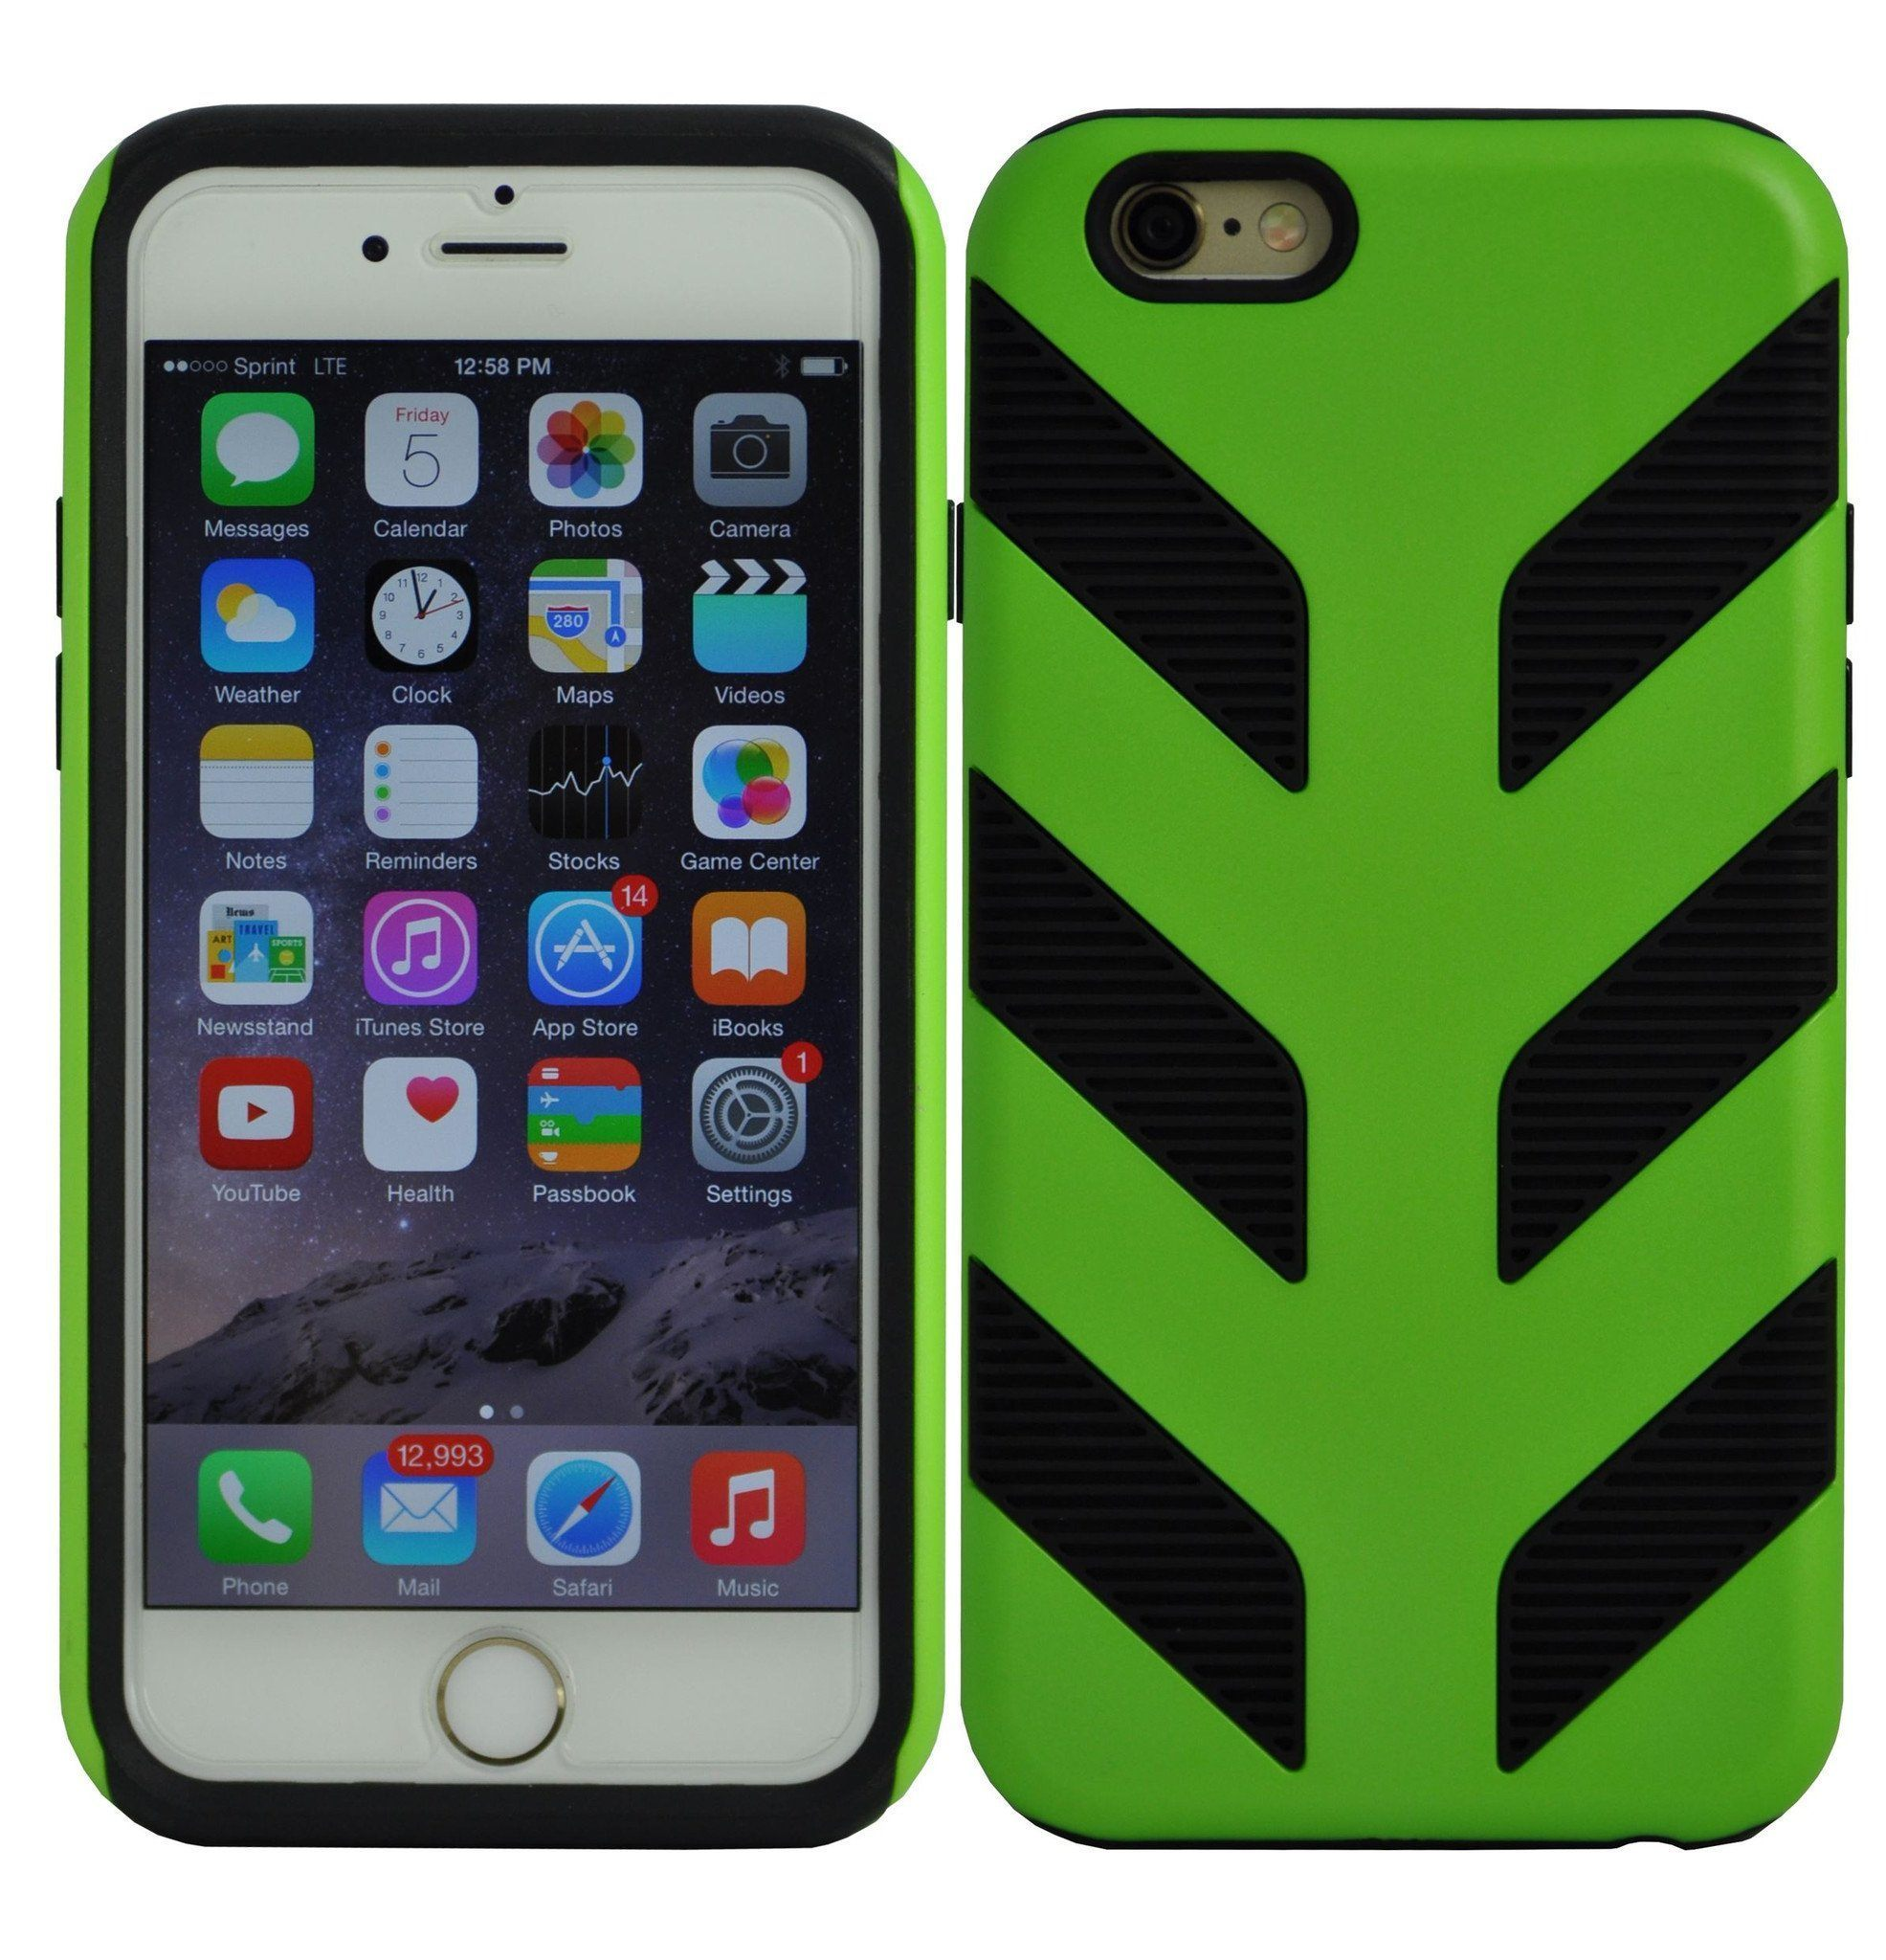 Pirella Case for iPhone 6 Plus - Green